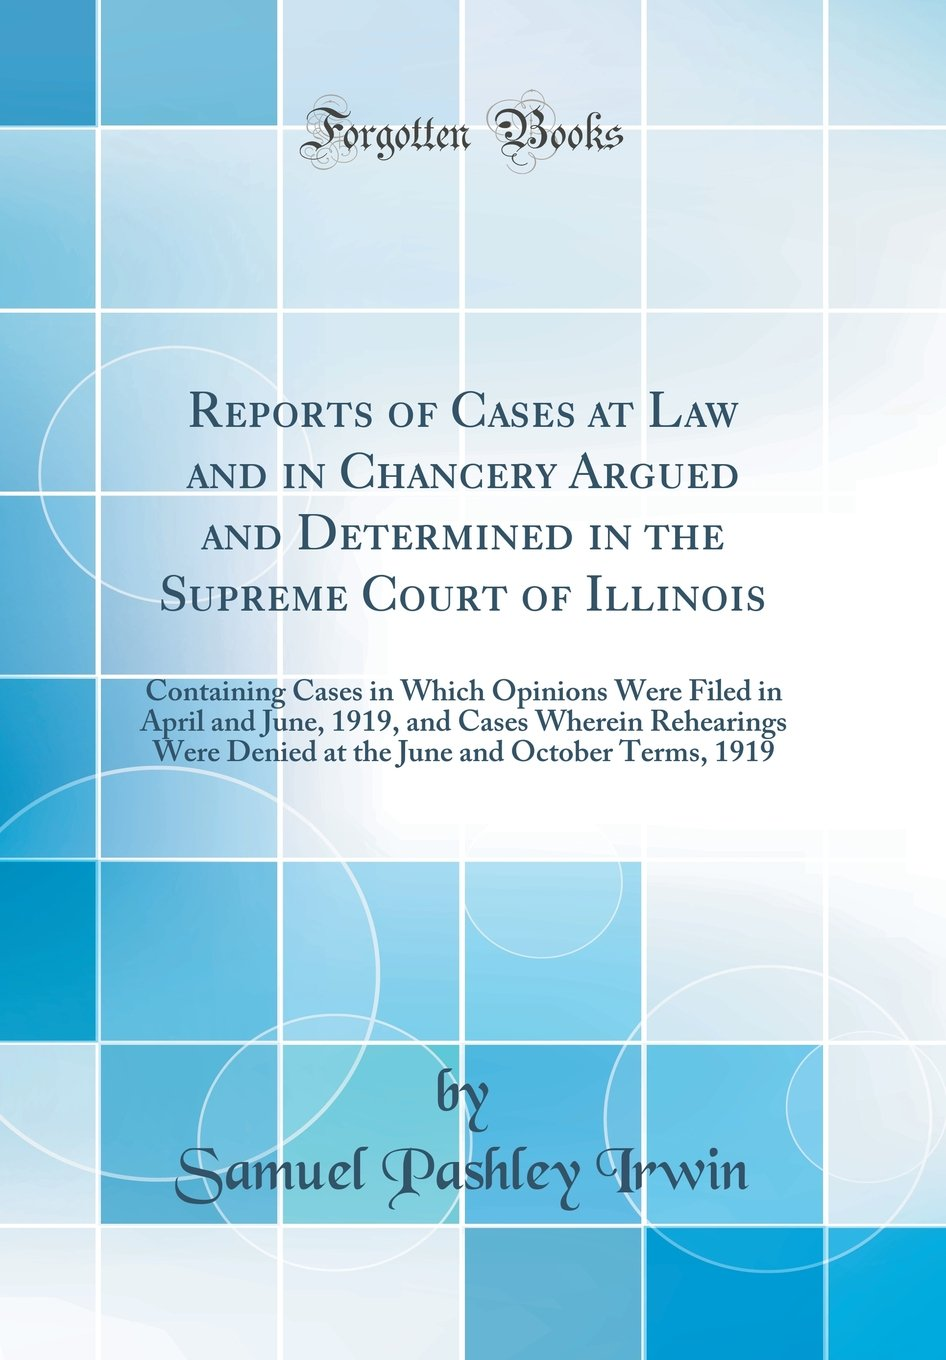 Reports of Cases at Law and in Chancery Argued and Determined in the Supreme Court of Illinois: Containing Cases in Which Opinions Were Filed in April Denied at the June and October Terms, 1919 pdf